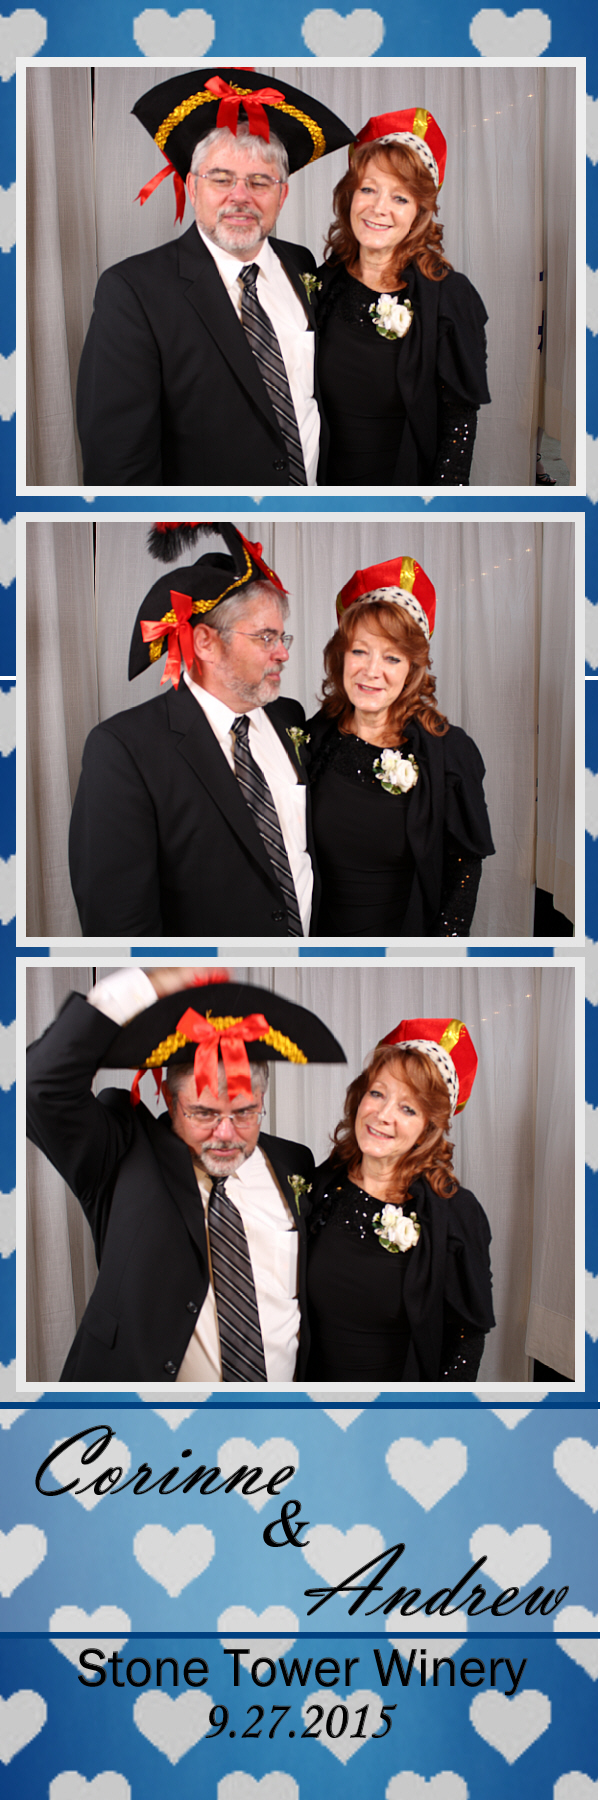 Guest House Events Photo Booth C&A (16).jpg